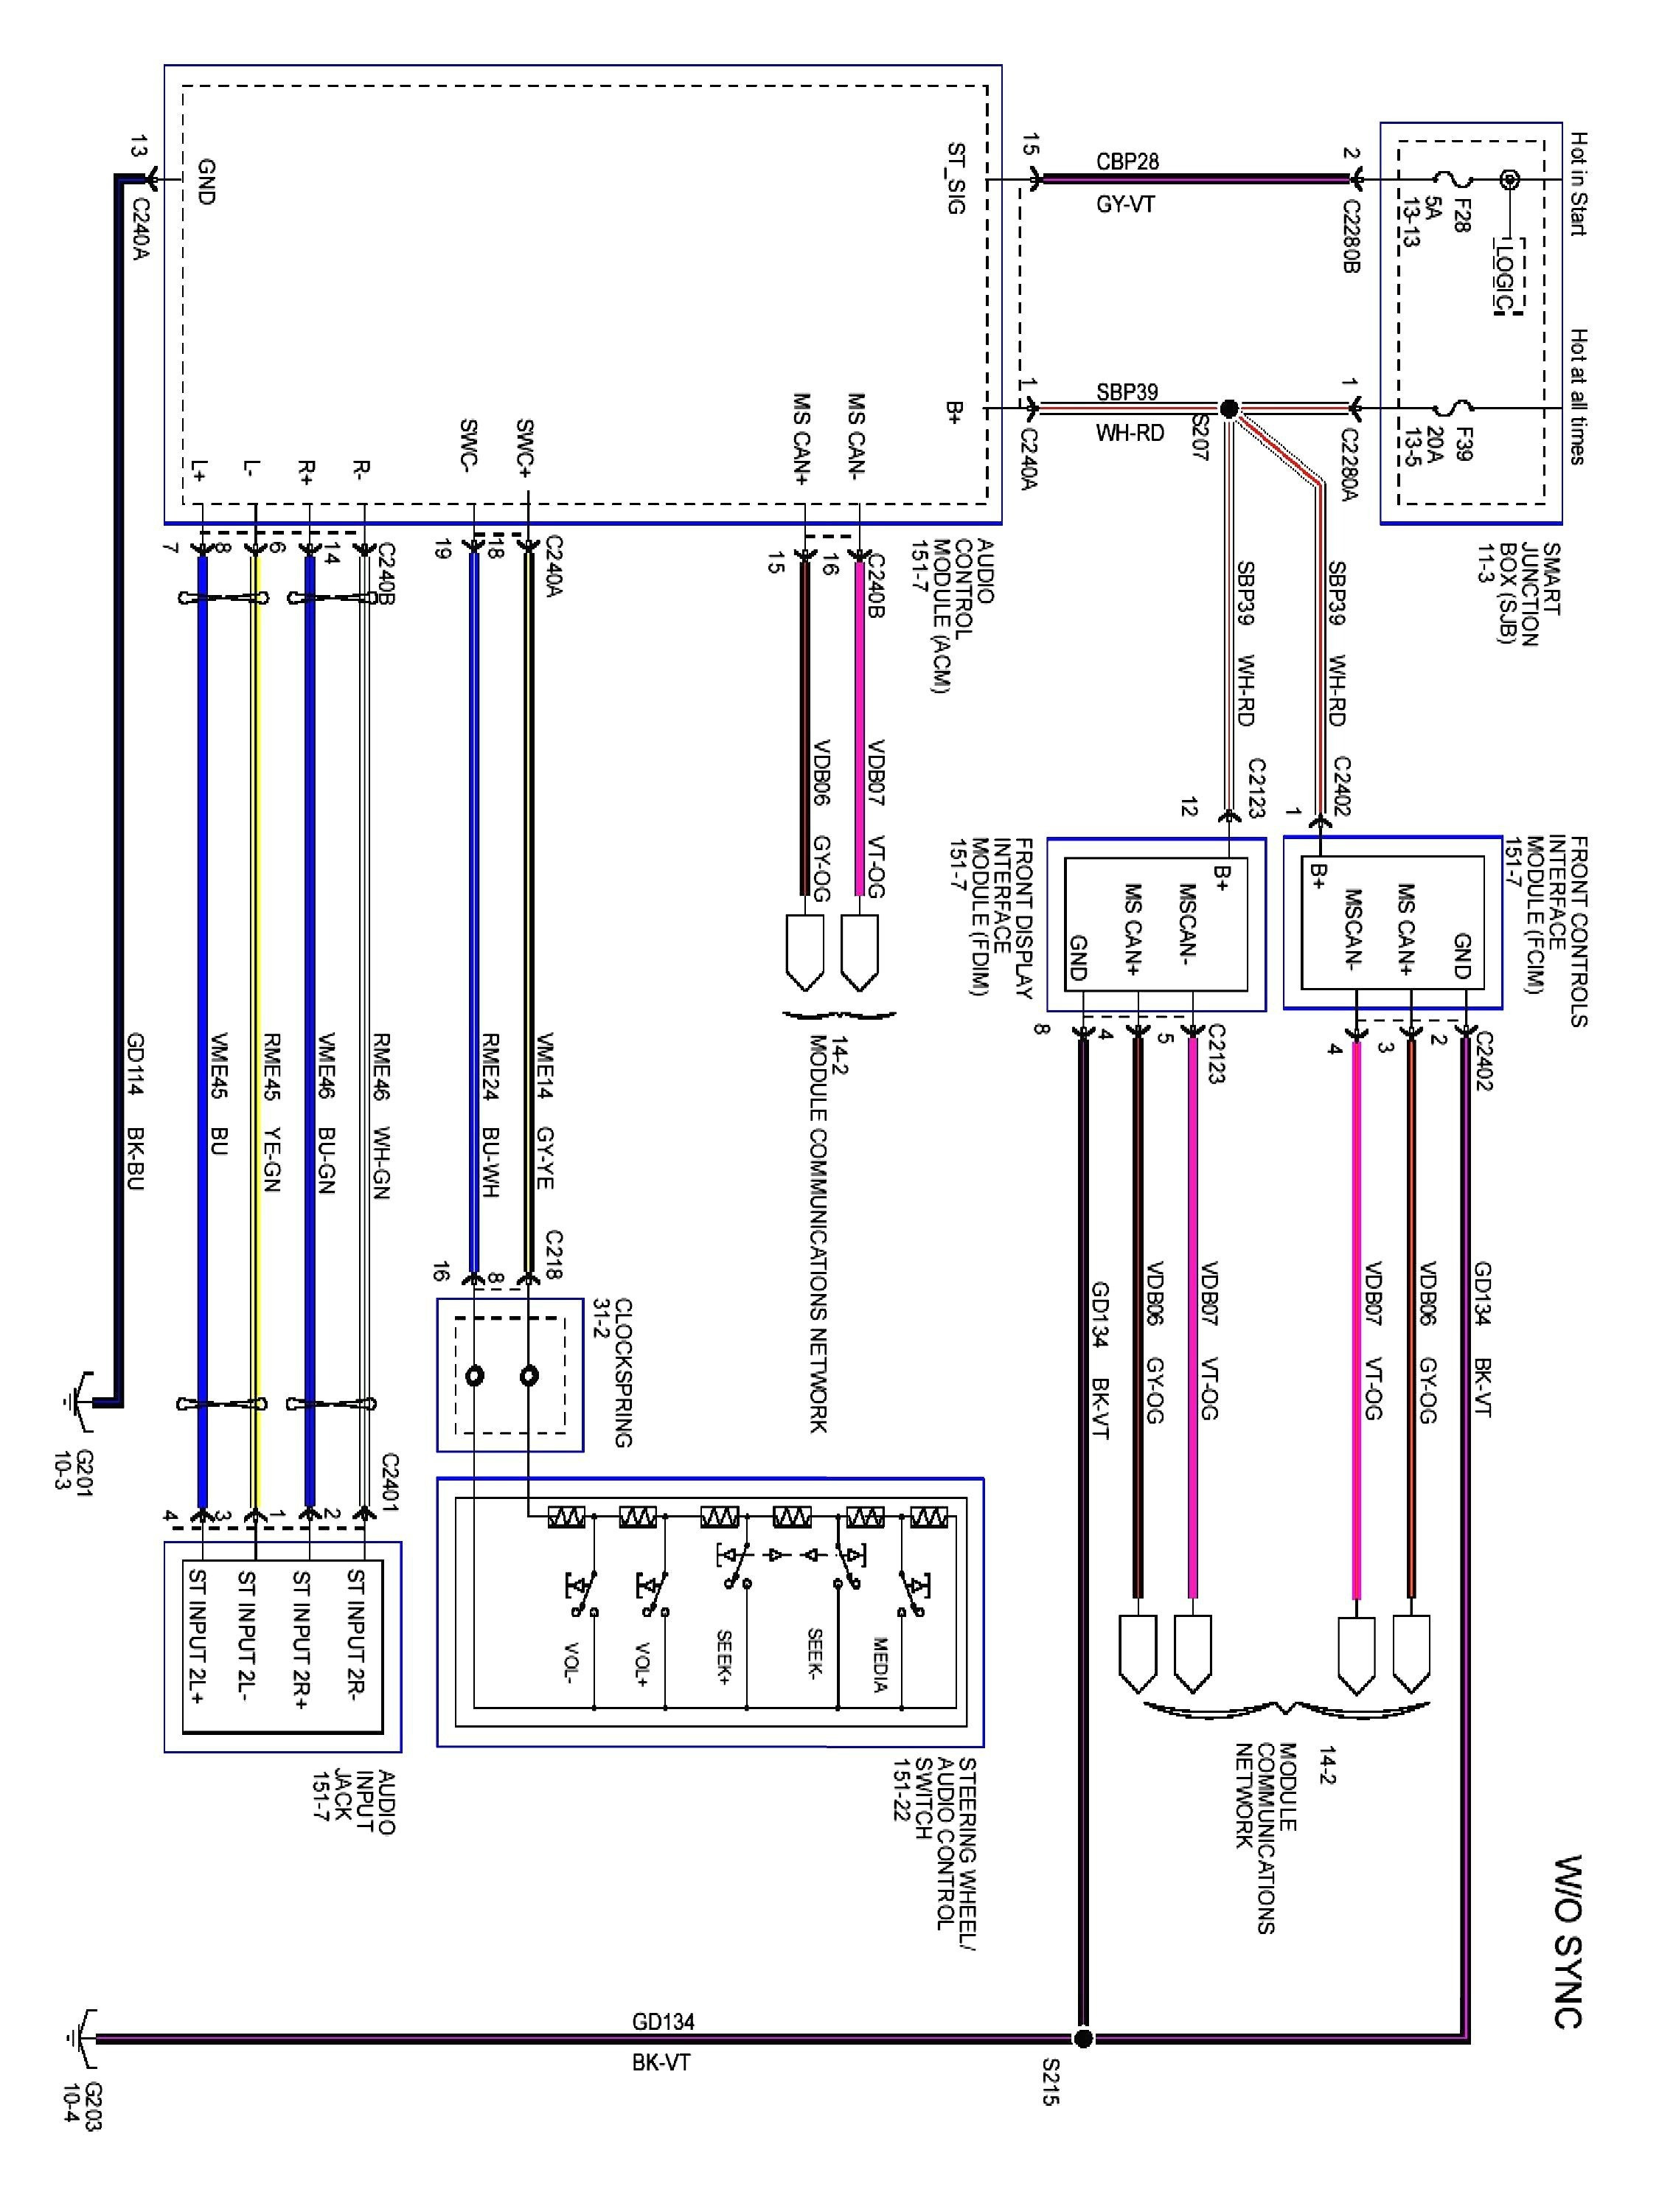 Bmw X3 Wiring Diagram Pdf Sample